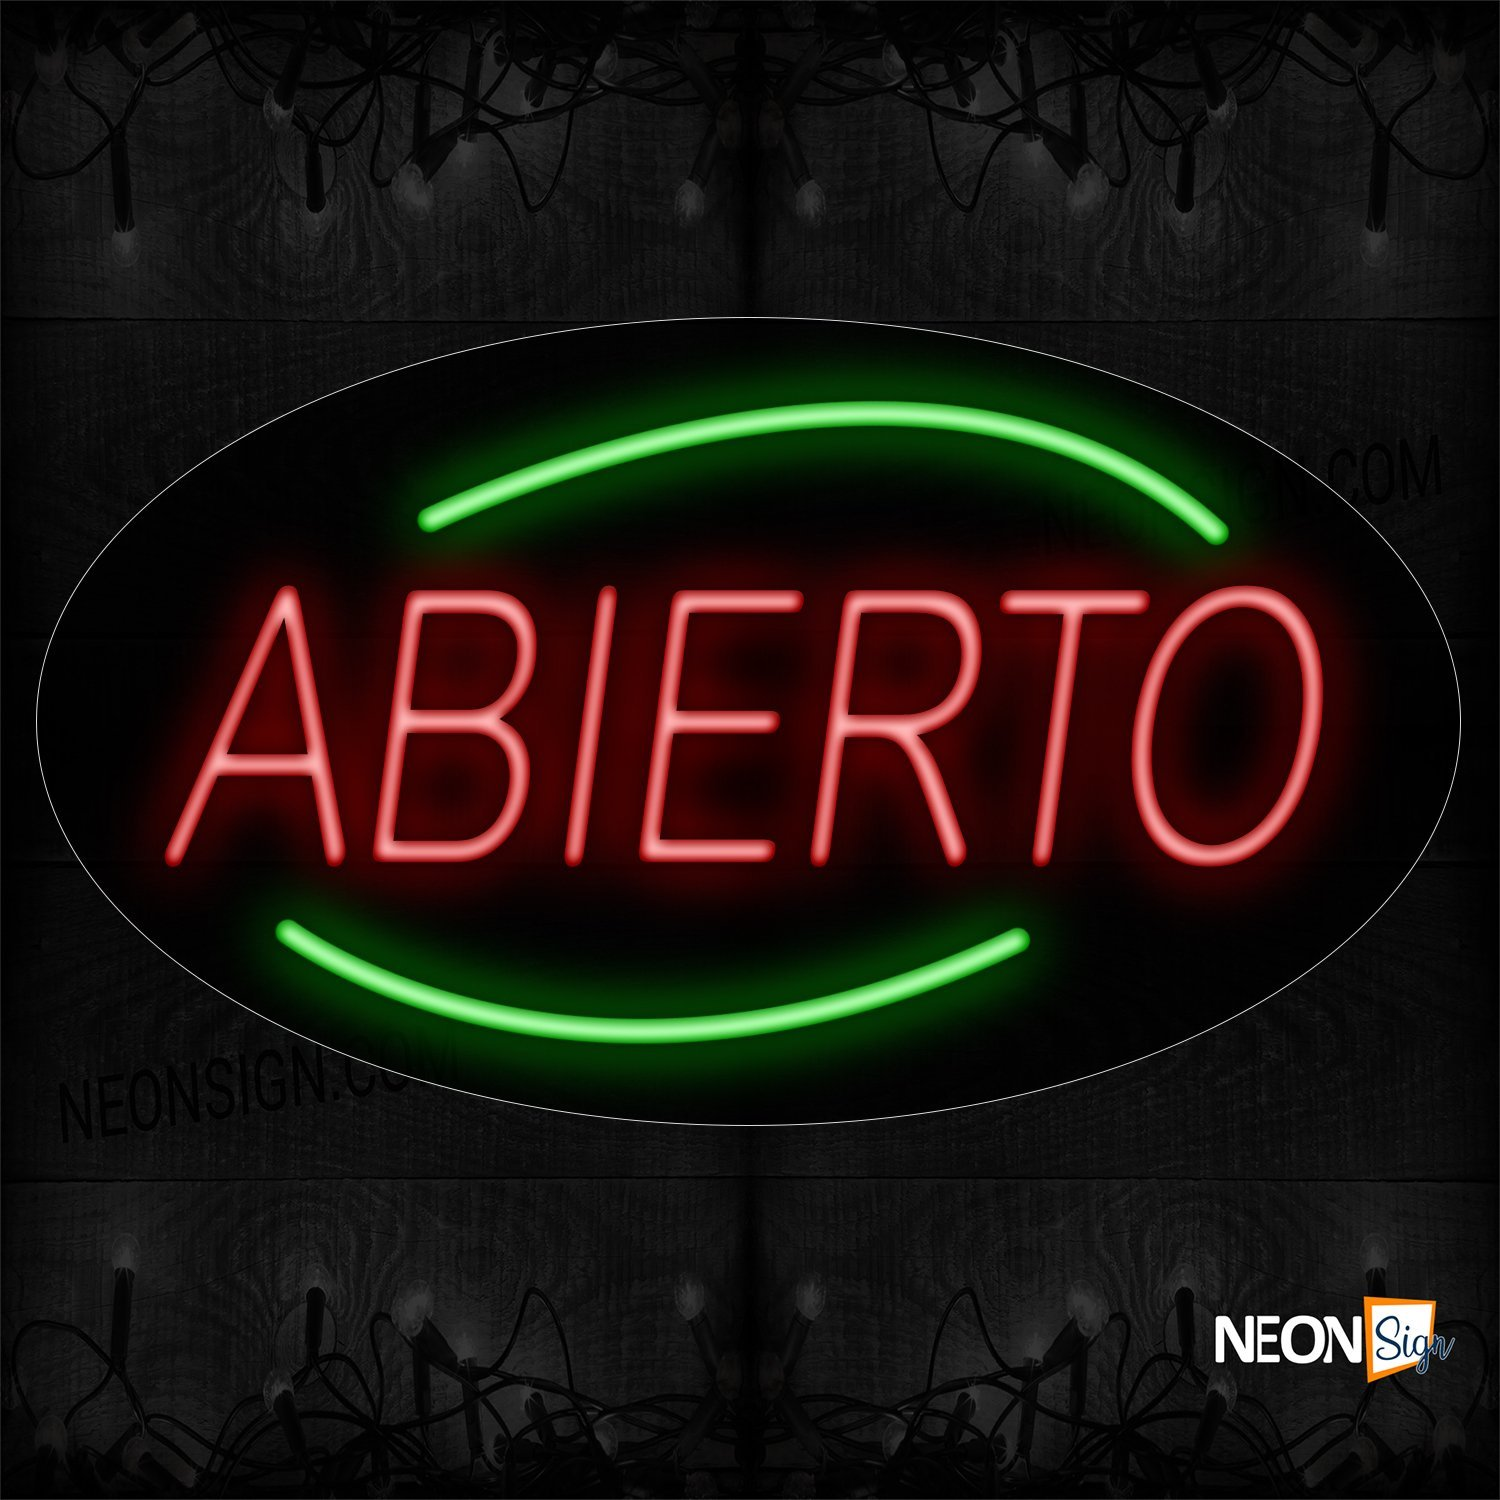 Image of Abierto In Red With Green Arc Border Neon Sign